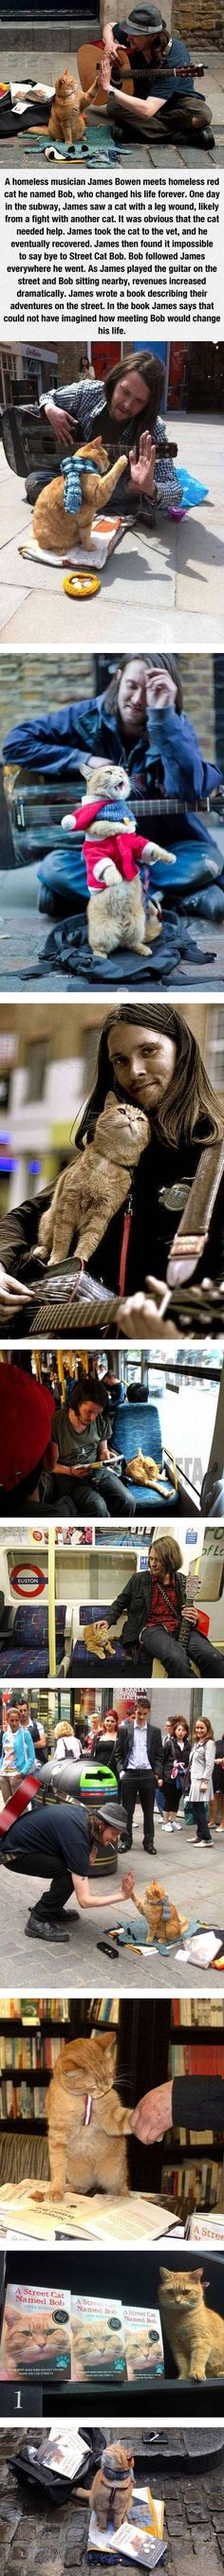 A Homeless Musician And His Cat - This is awesome! :)